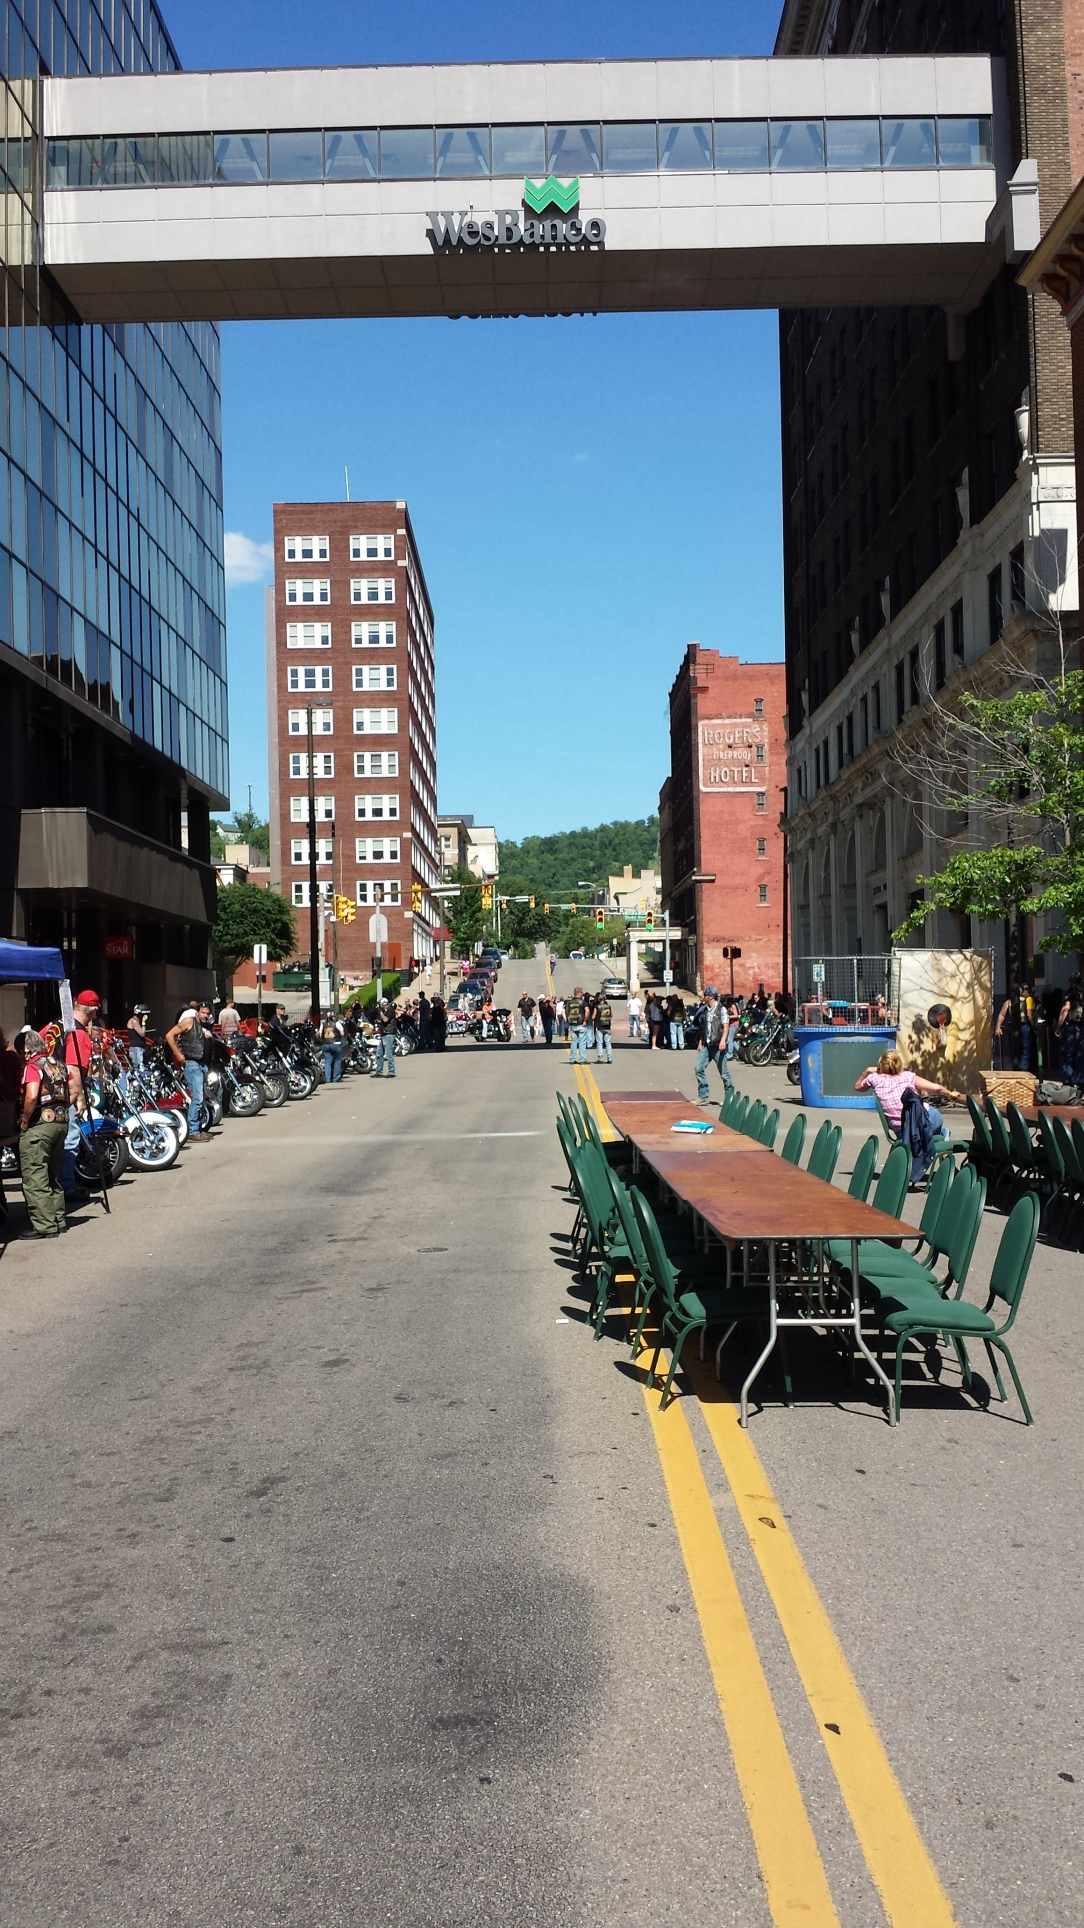 Downtown Wheeling. There was also a motorcycle rally, separate from the chili cook off I'll be chatting about a few paragraphs down.